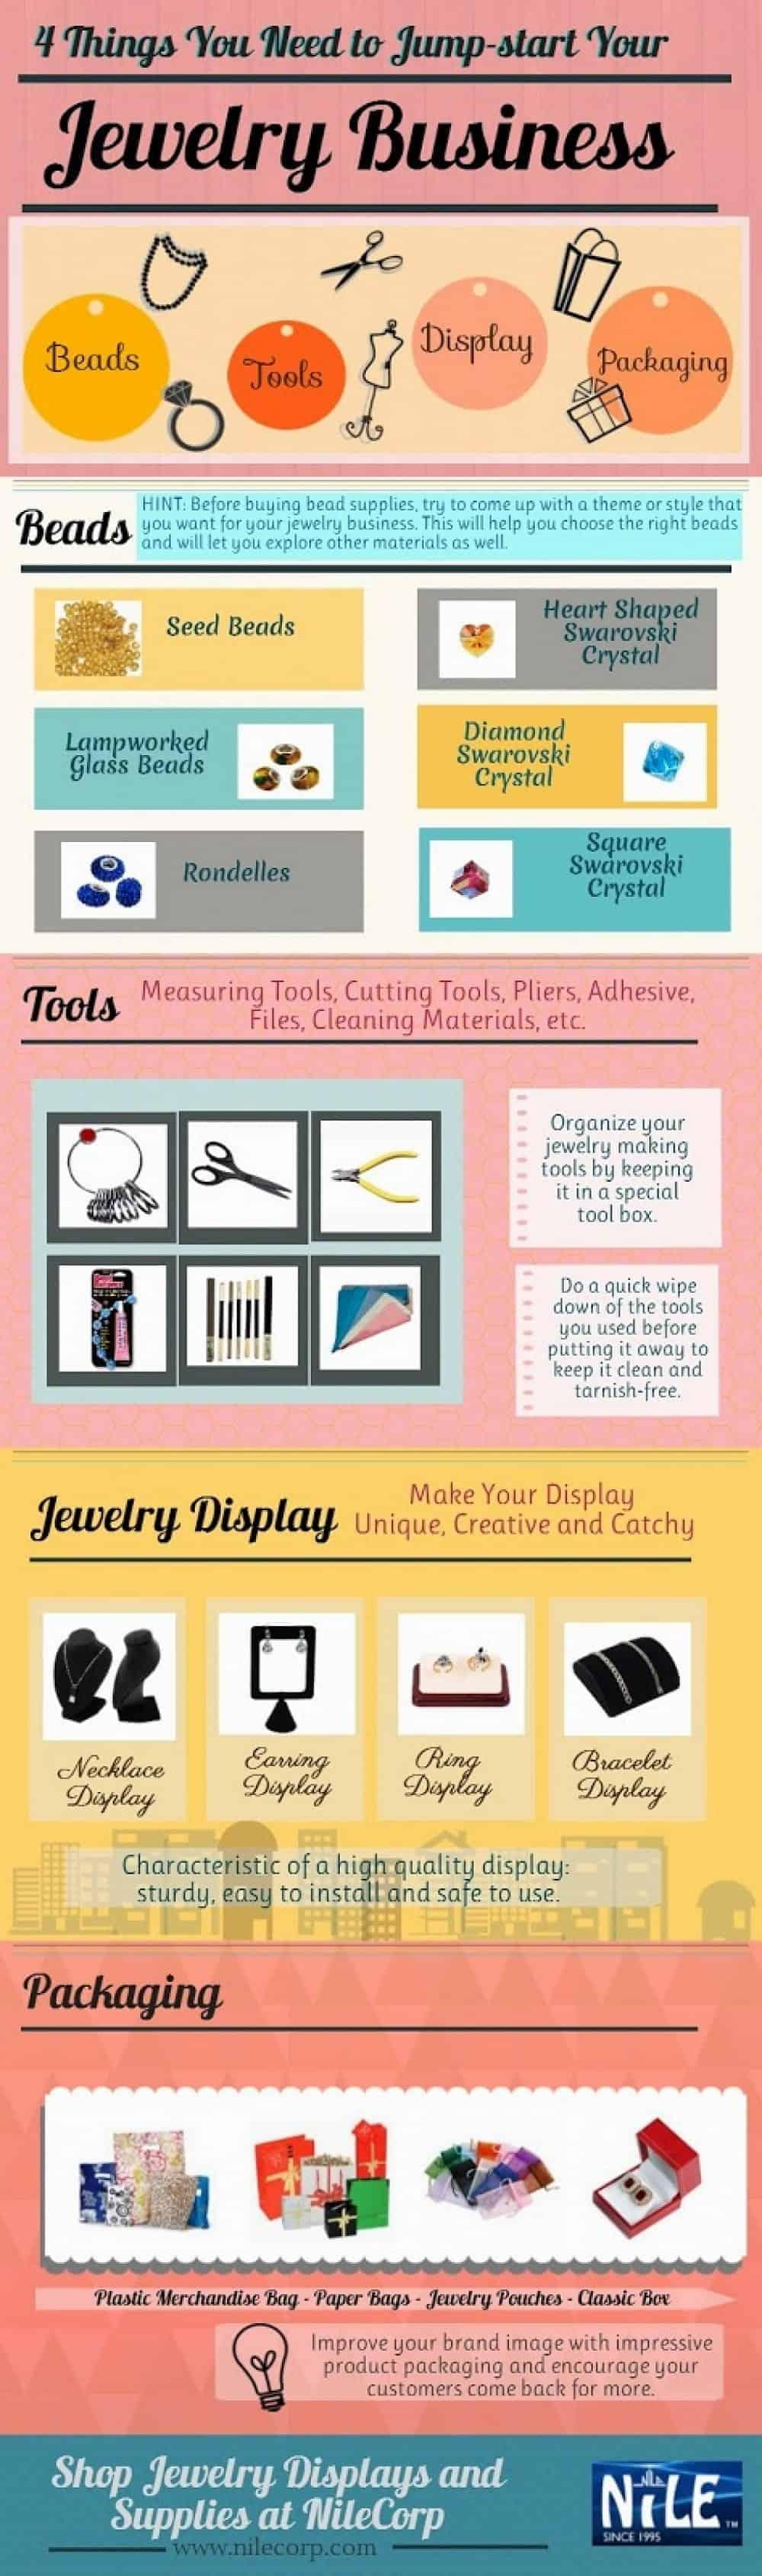 things to do for jewelry business